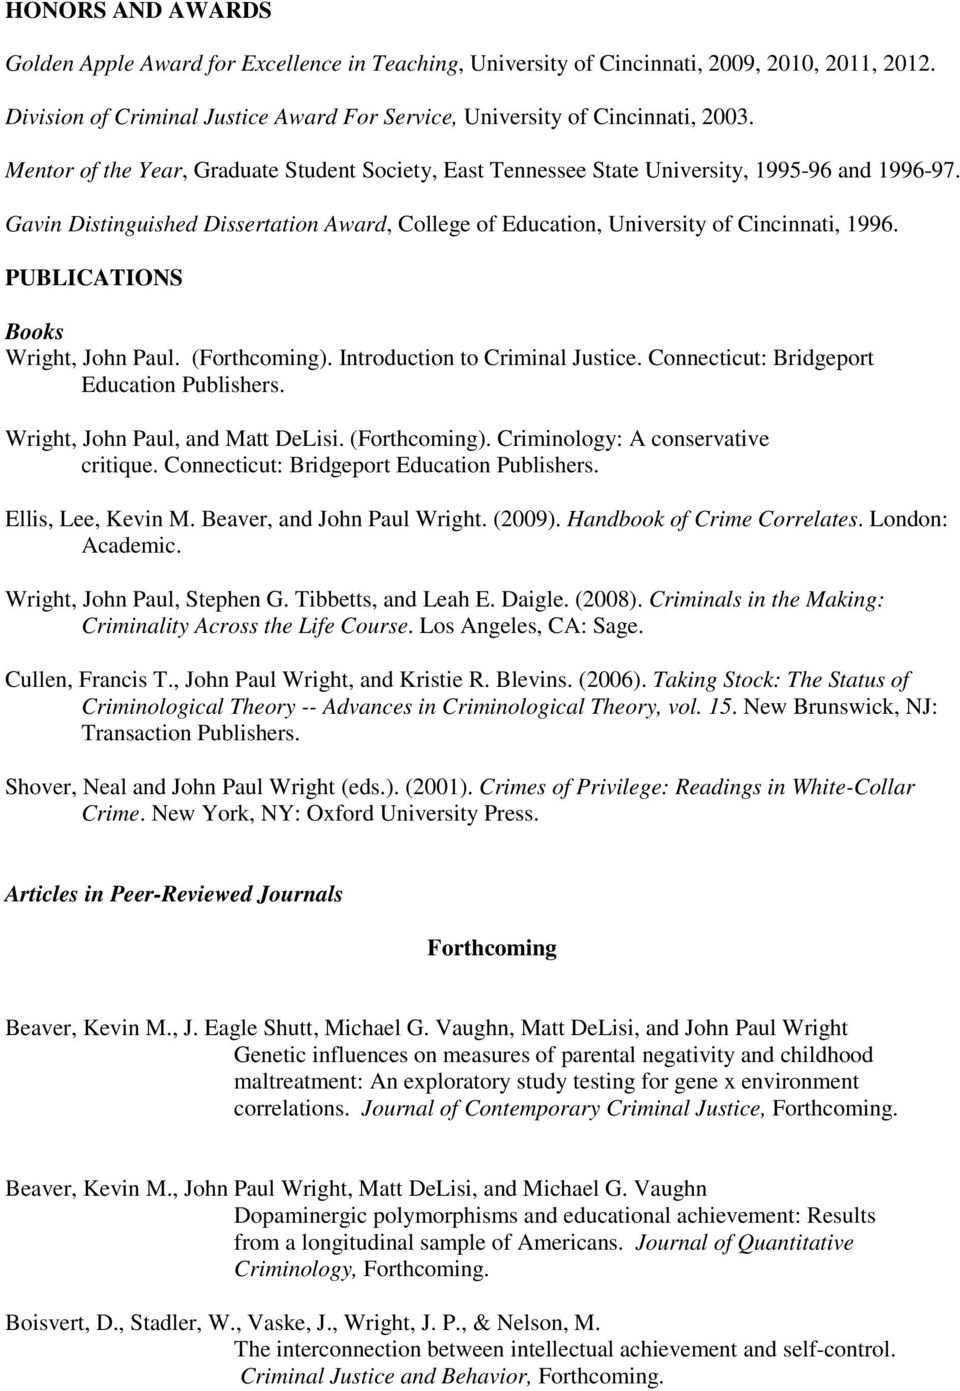 PUBLICATIONS Books Wright, John Paul. (Forthcoming). Introduction to Criminal Justice. Connecticut: Bridgeport Education Publishers. Wright, John Paul, and Matt DeLisi. (Forthcoming). Criminology: A conservative critique.